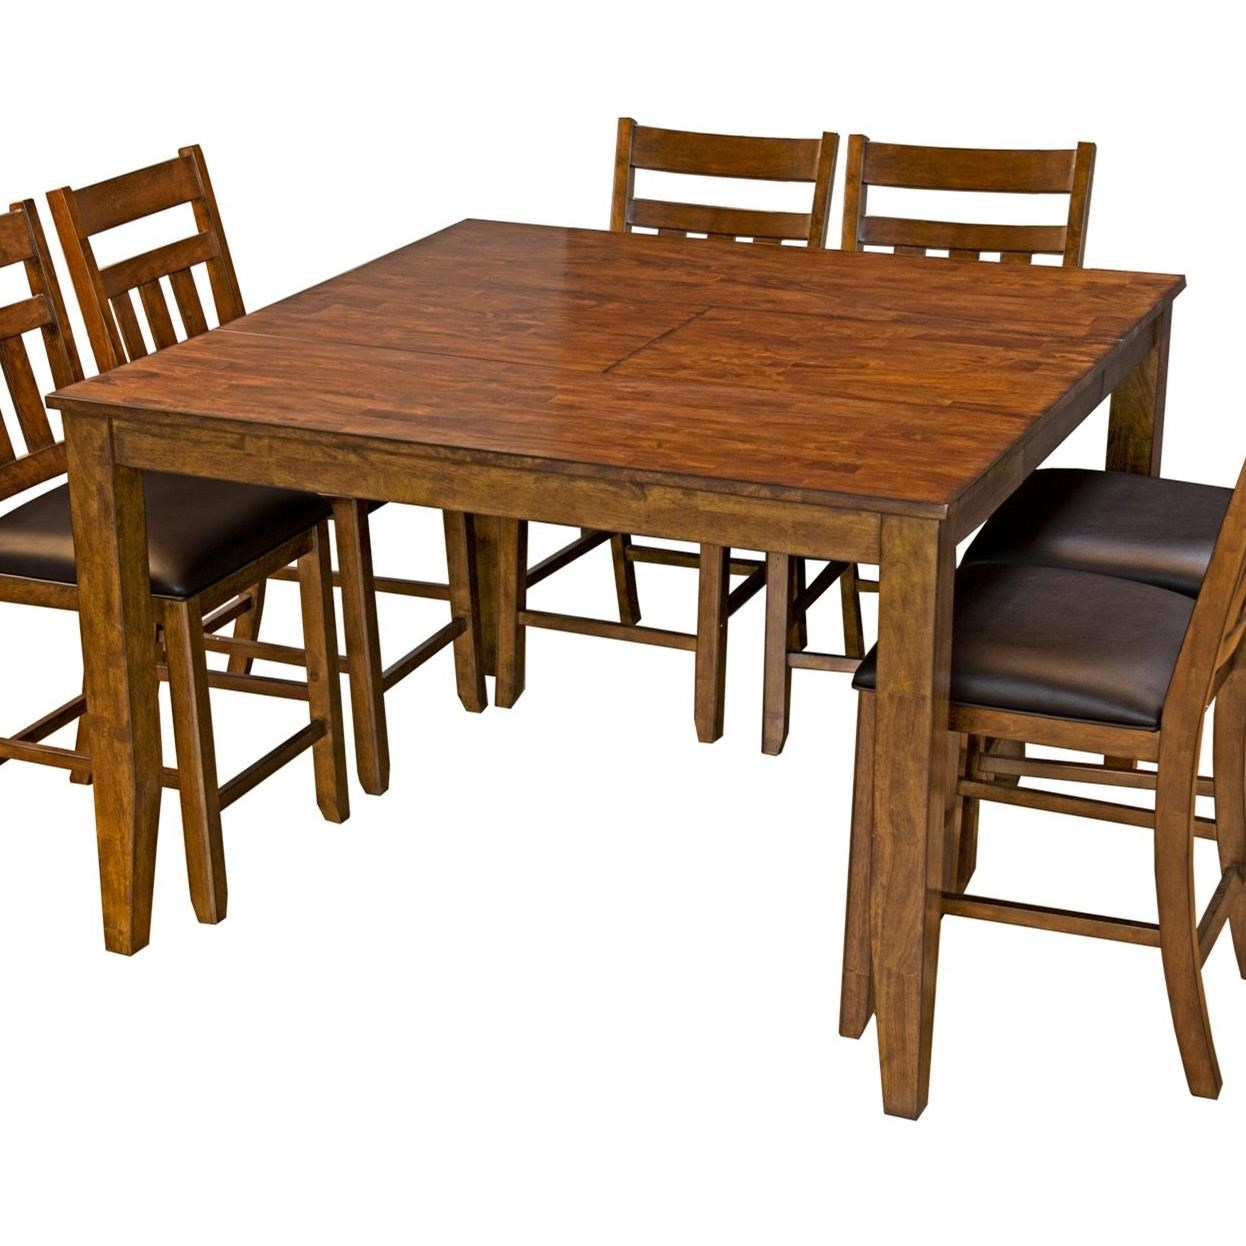 Aamerica Mason Masma6750 Square Butterfly Leaf Gathering Height Table Factory Direct Furniture Pub Tables